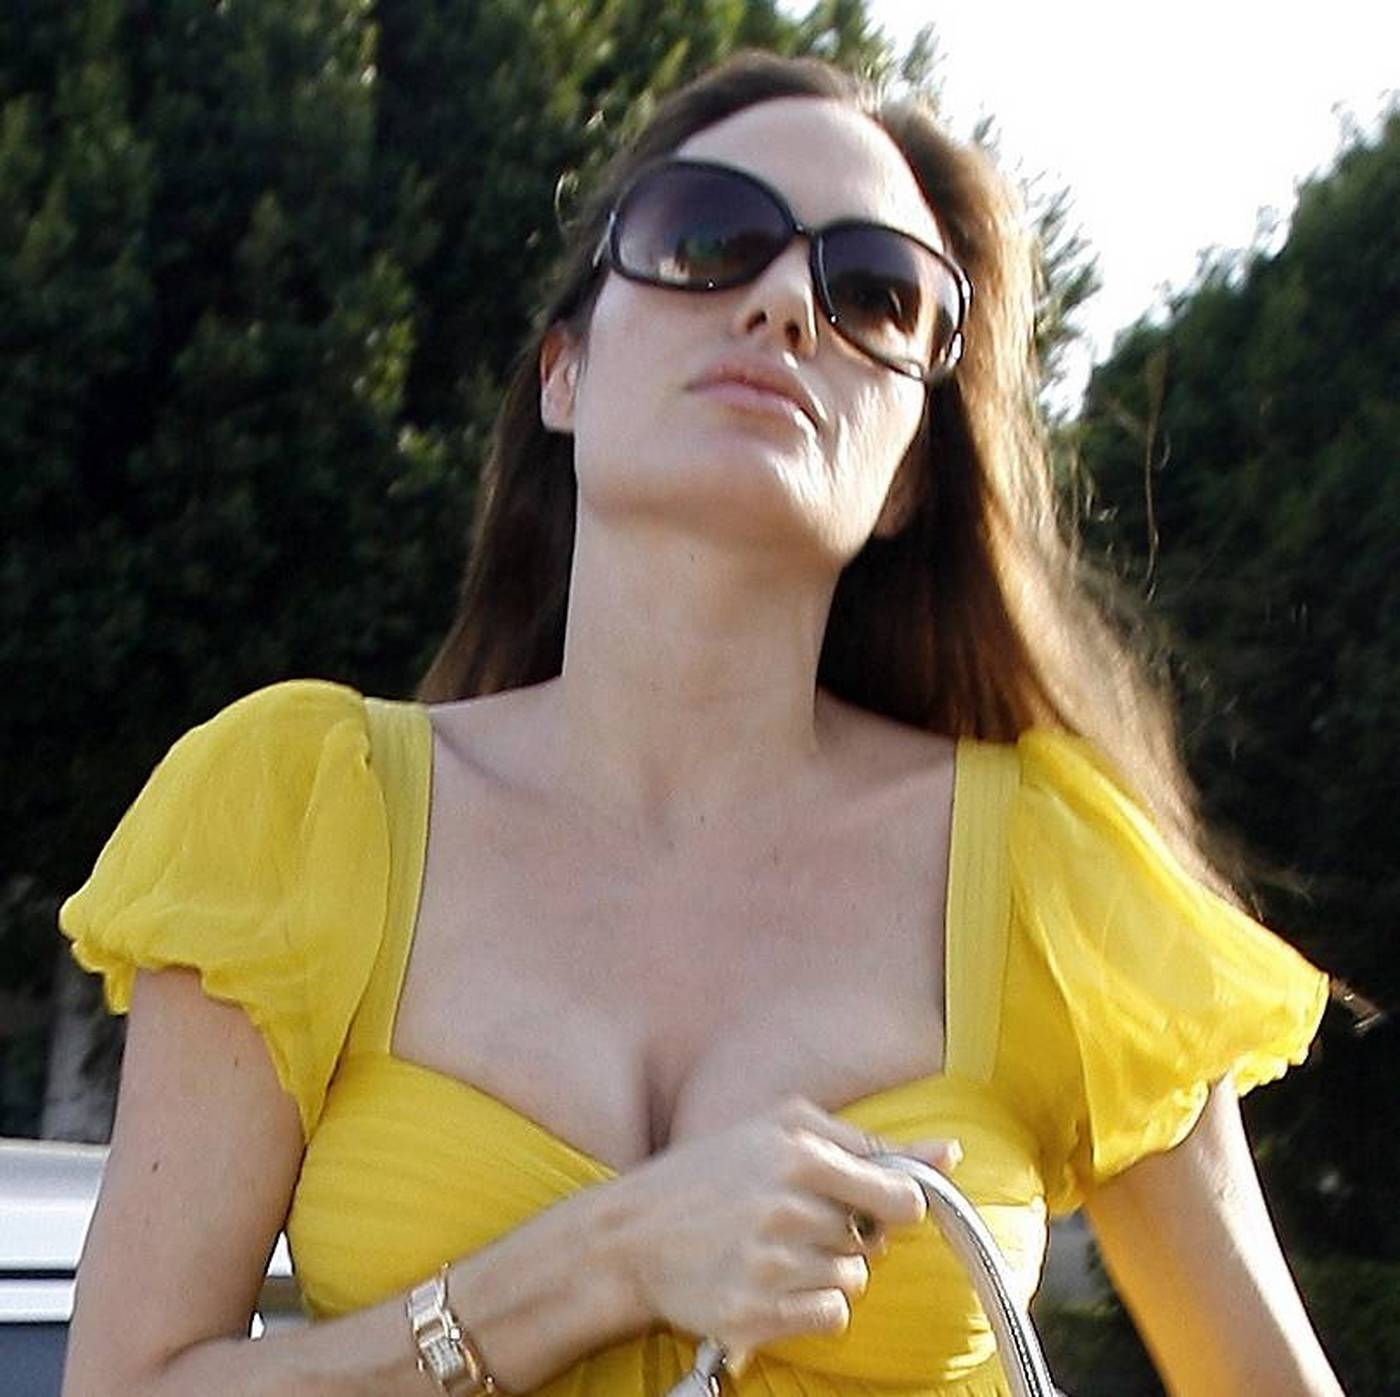 Angelina Jolie huge cleavage pictures ~ Hot Actress Sexy Pics